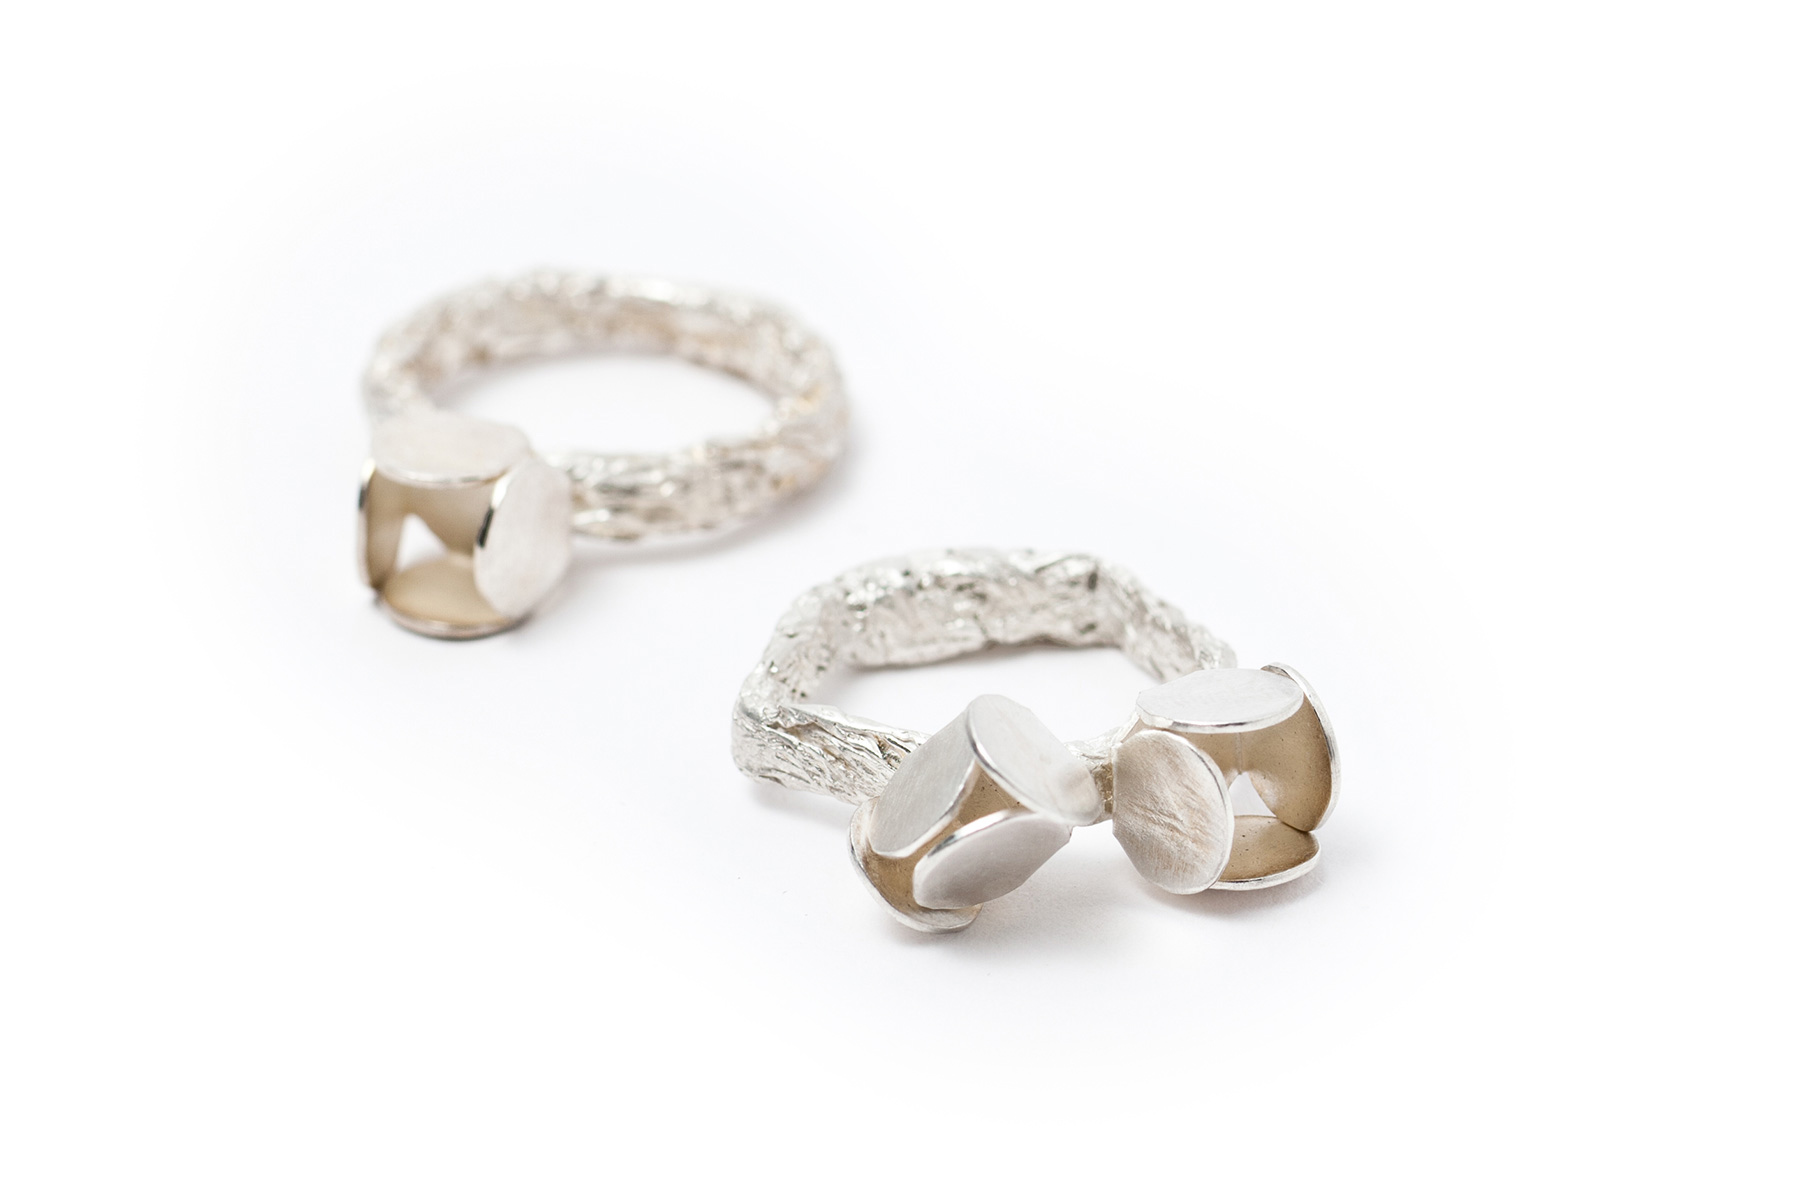 rings custom engagement made contemporary by andreamueller rough cut diamonds